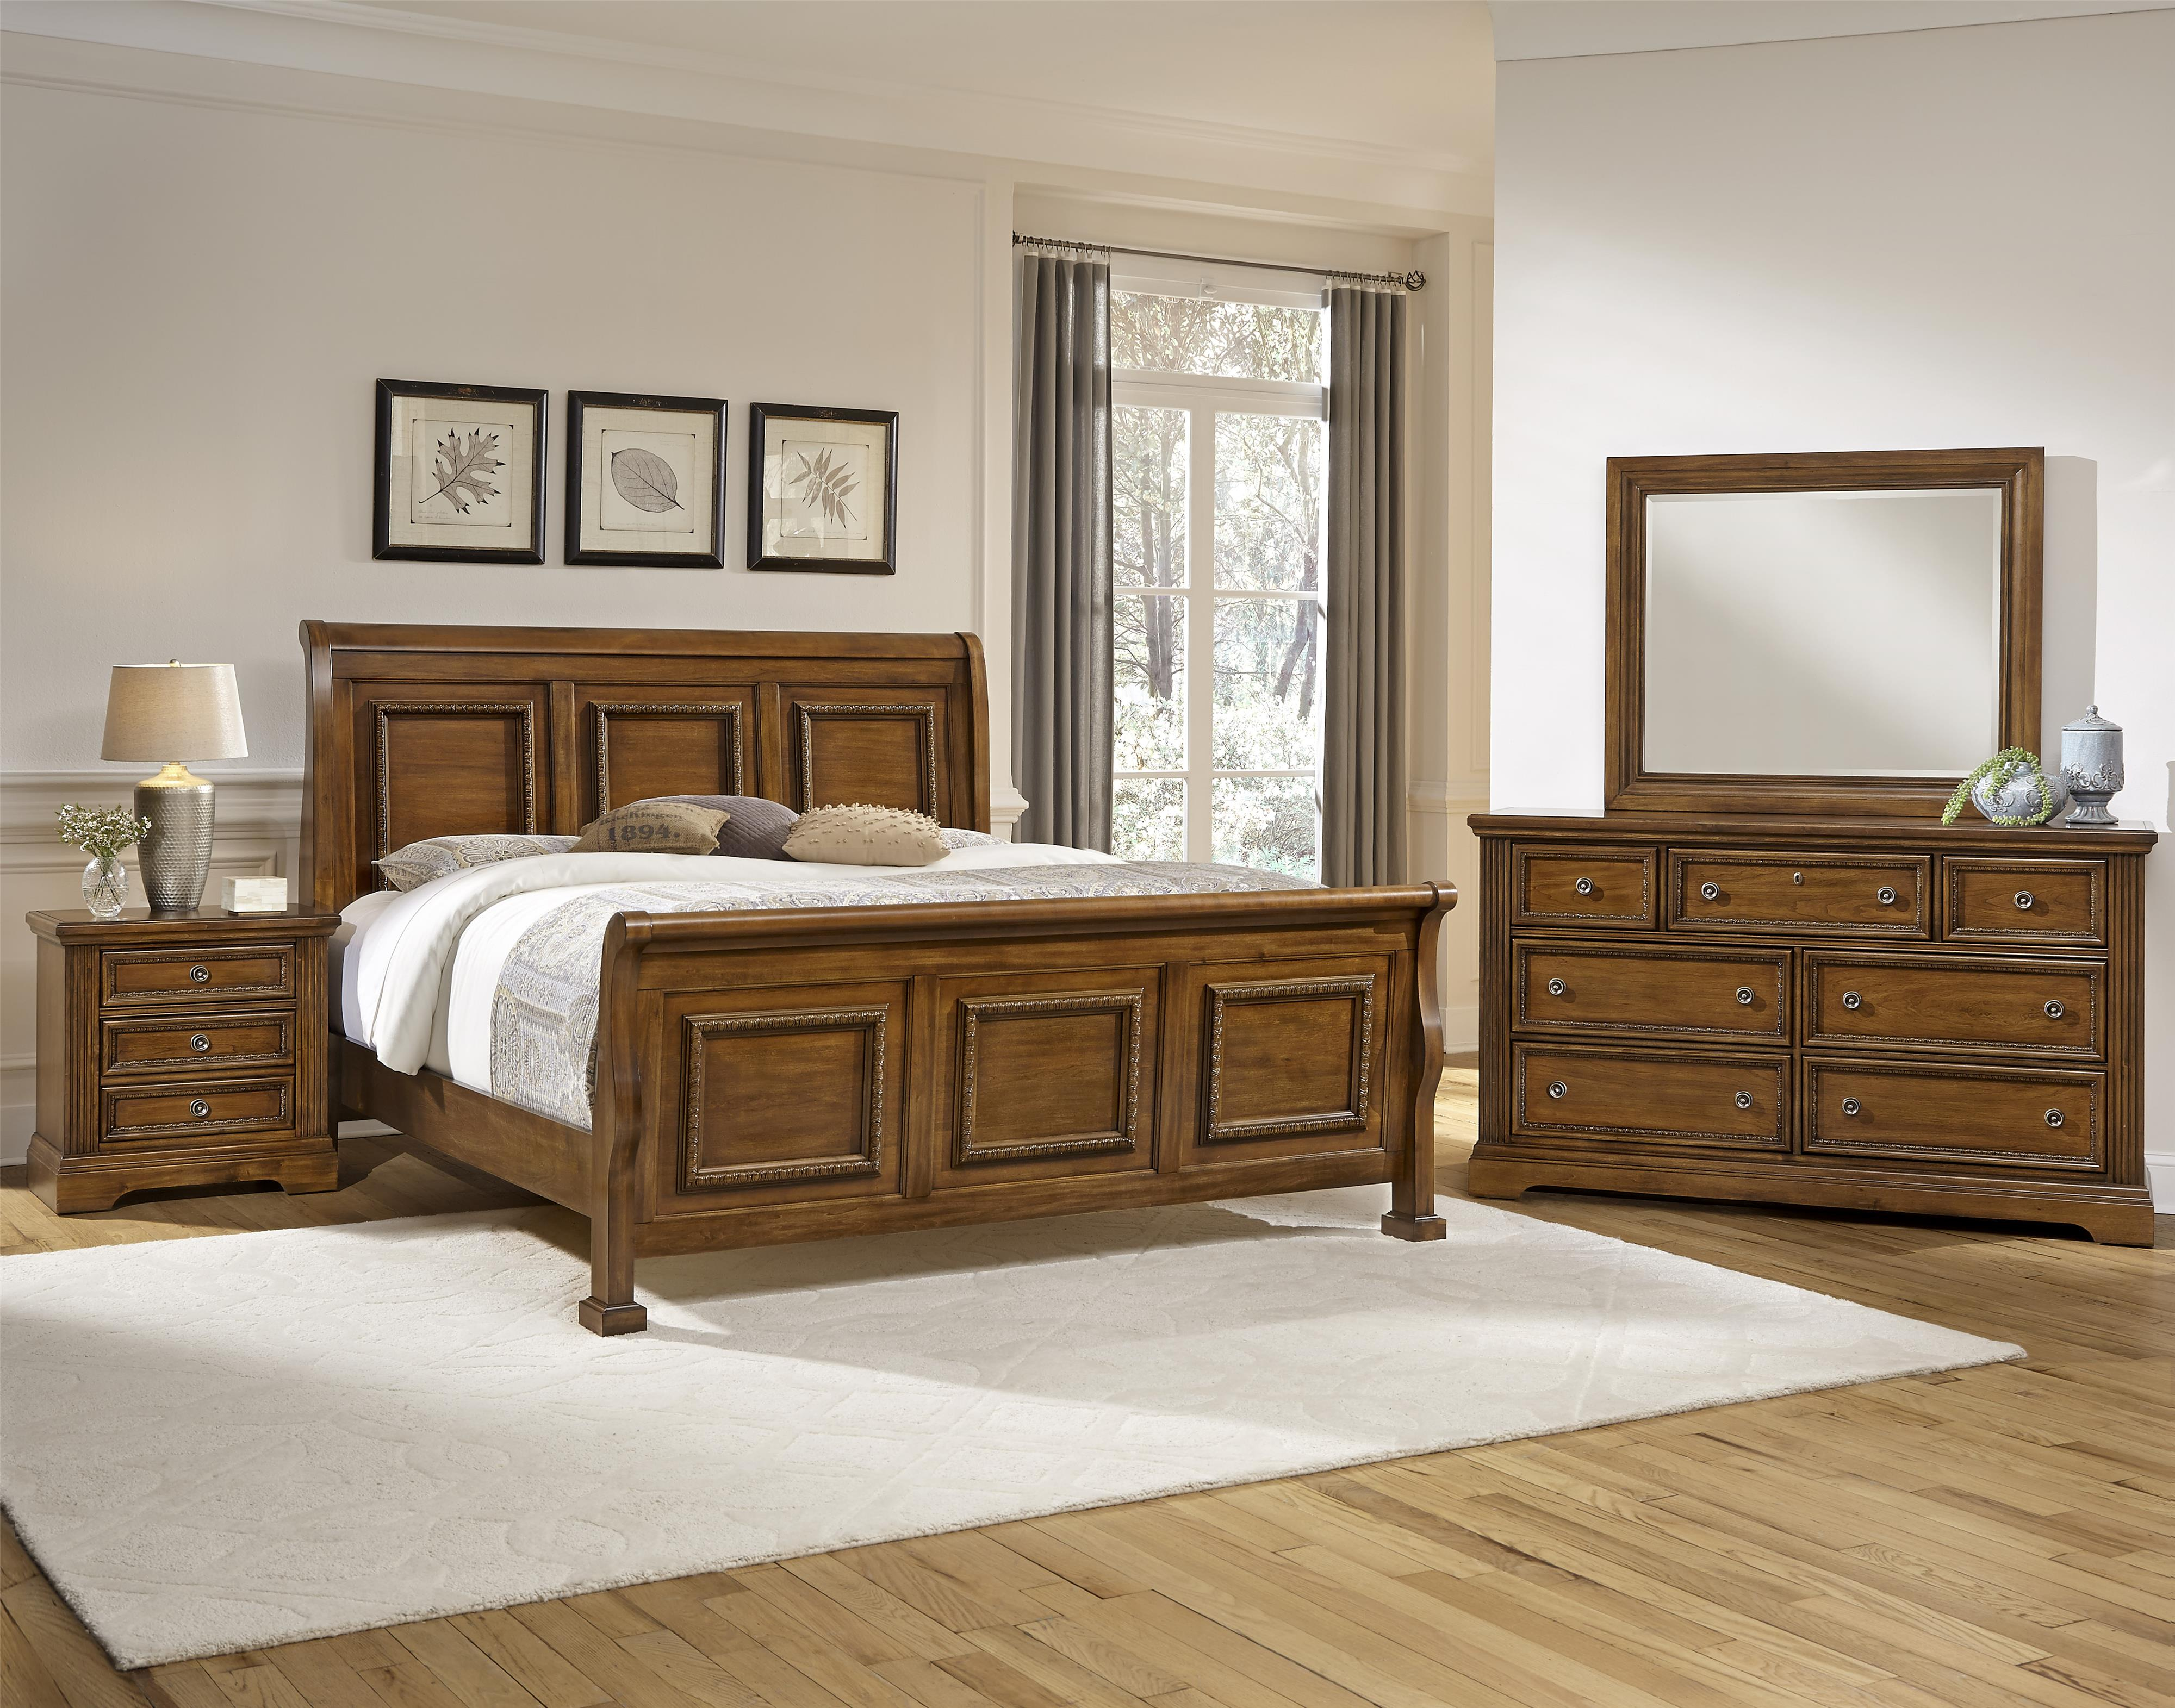 Vaughan Bassett Affinity Queen Bedroom Group - Item Number: 562 Q Bedroom Group 2